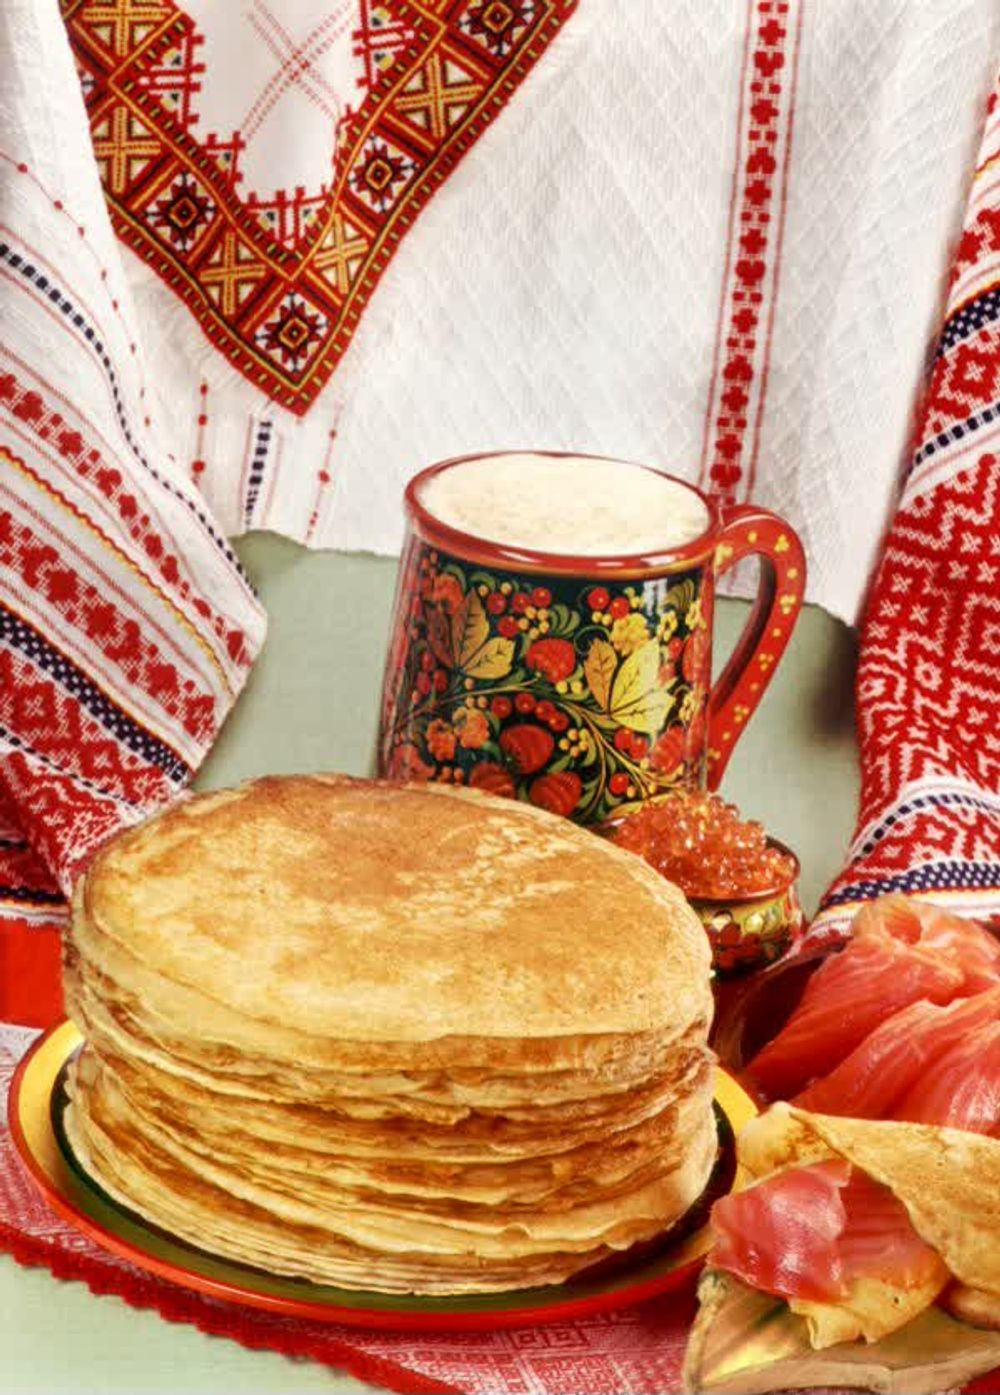 title: Traditional Blini Russian Pancakes with Smoked Salmon and Sour Cream